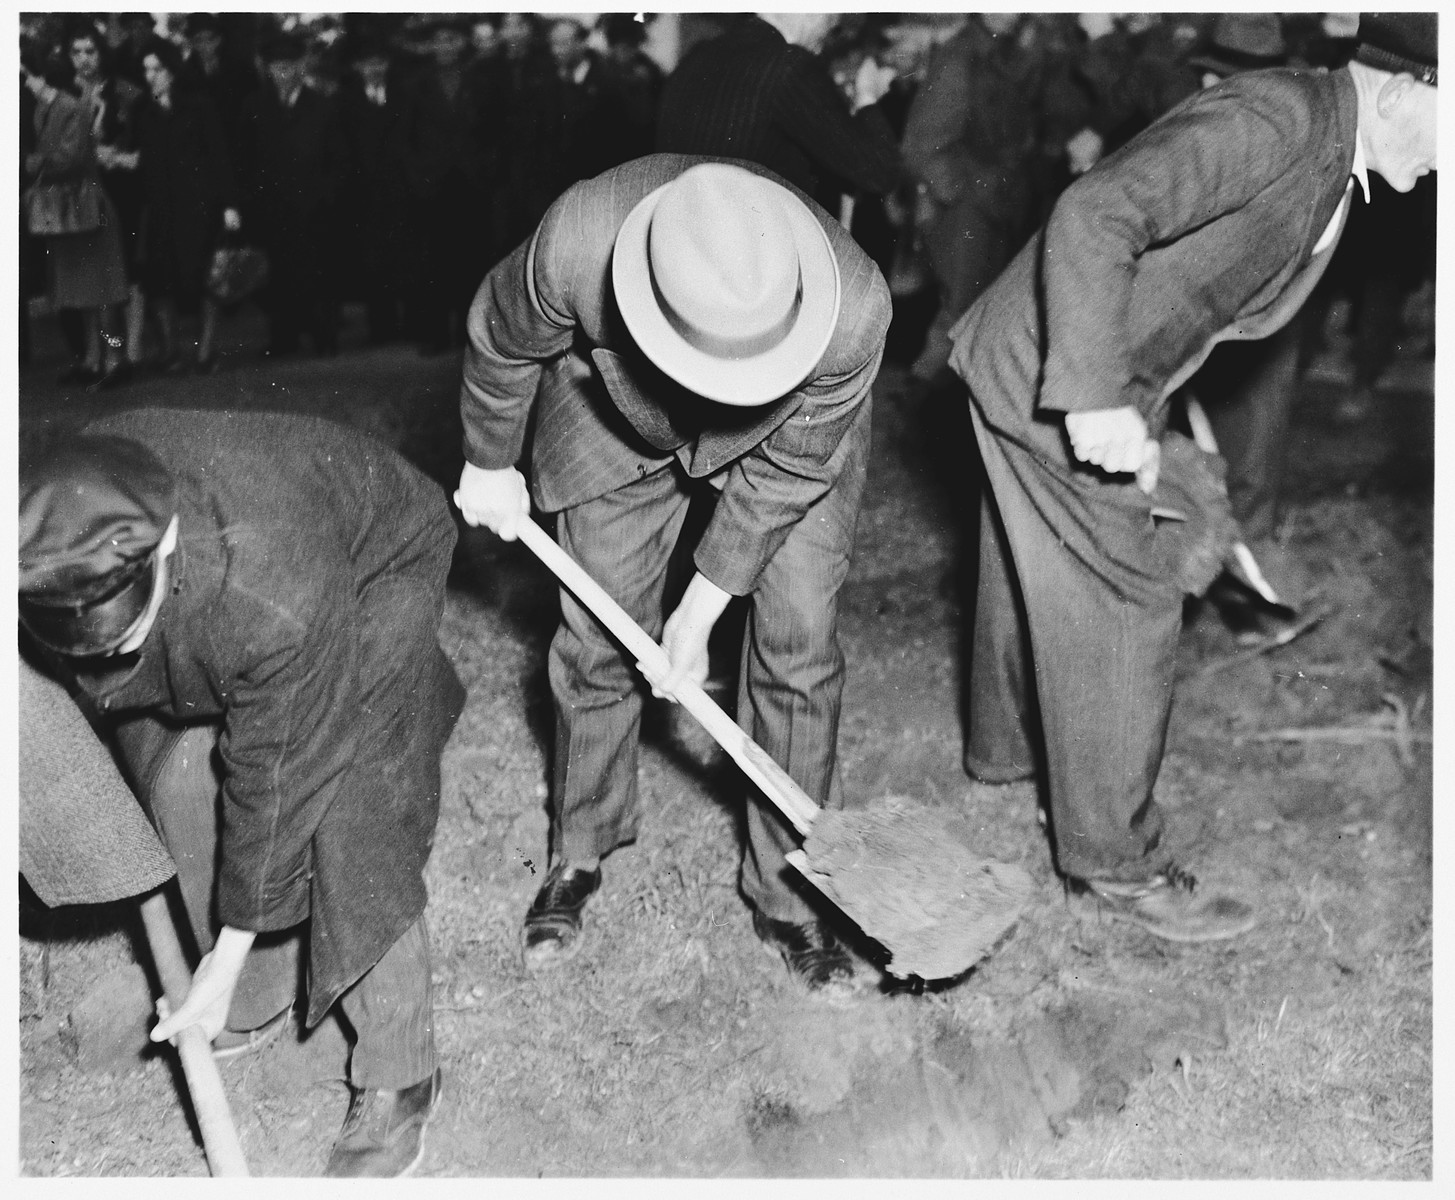 German civilians dig graves for the bodies of 71 political prisoners, exhumed from a mass grave on Wenzelnberg near Solingen-Ohligs, in front of the city hall.    The victims, most of whom were taken from Luettringhausen prison, were shot and buried by the Gestapo following orders to eliminate all Reich enemies just before the end of the war.